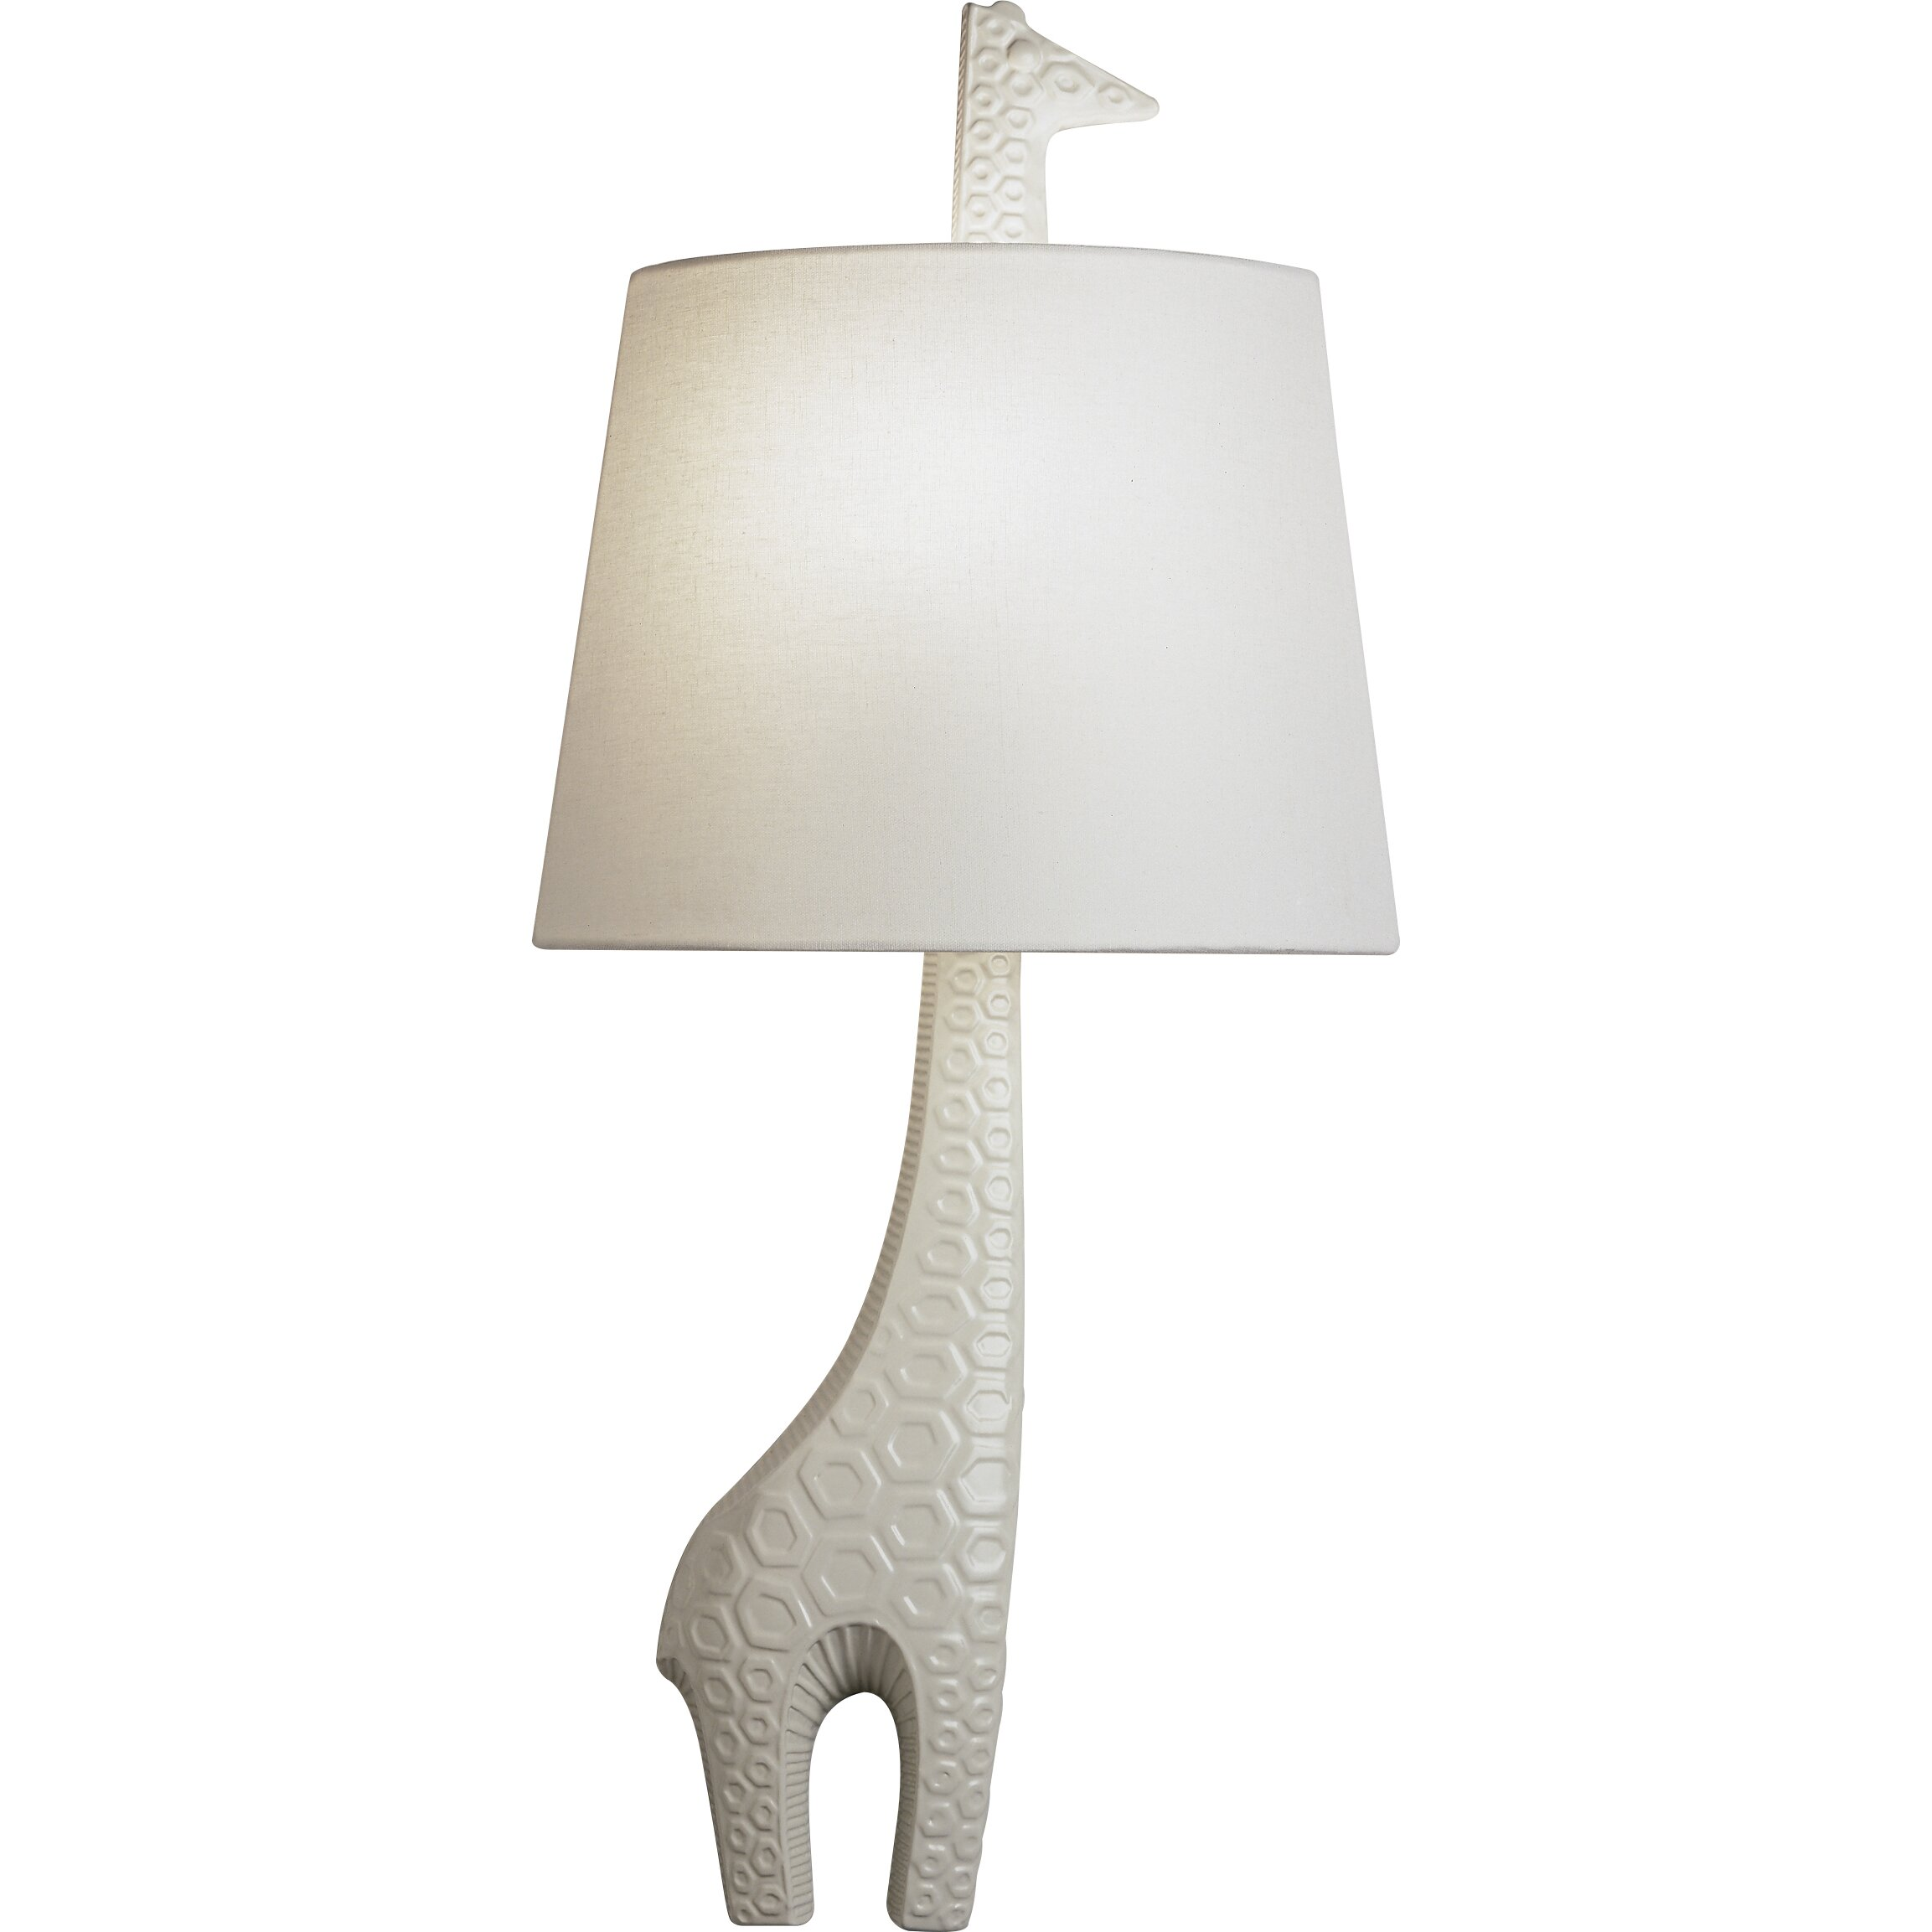 jonathan adler jonathan adler right facing giraffe 1 light wall sconce. Black Bedroom Furniture Sets. Home Design Ideas